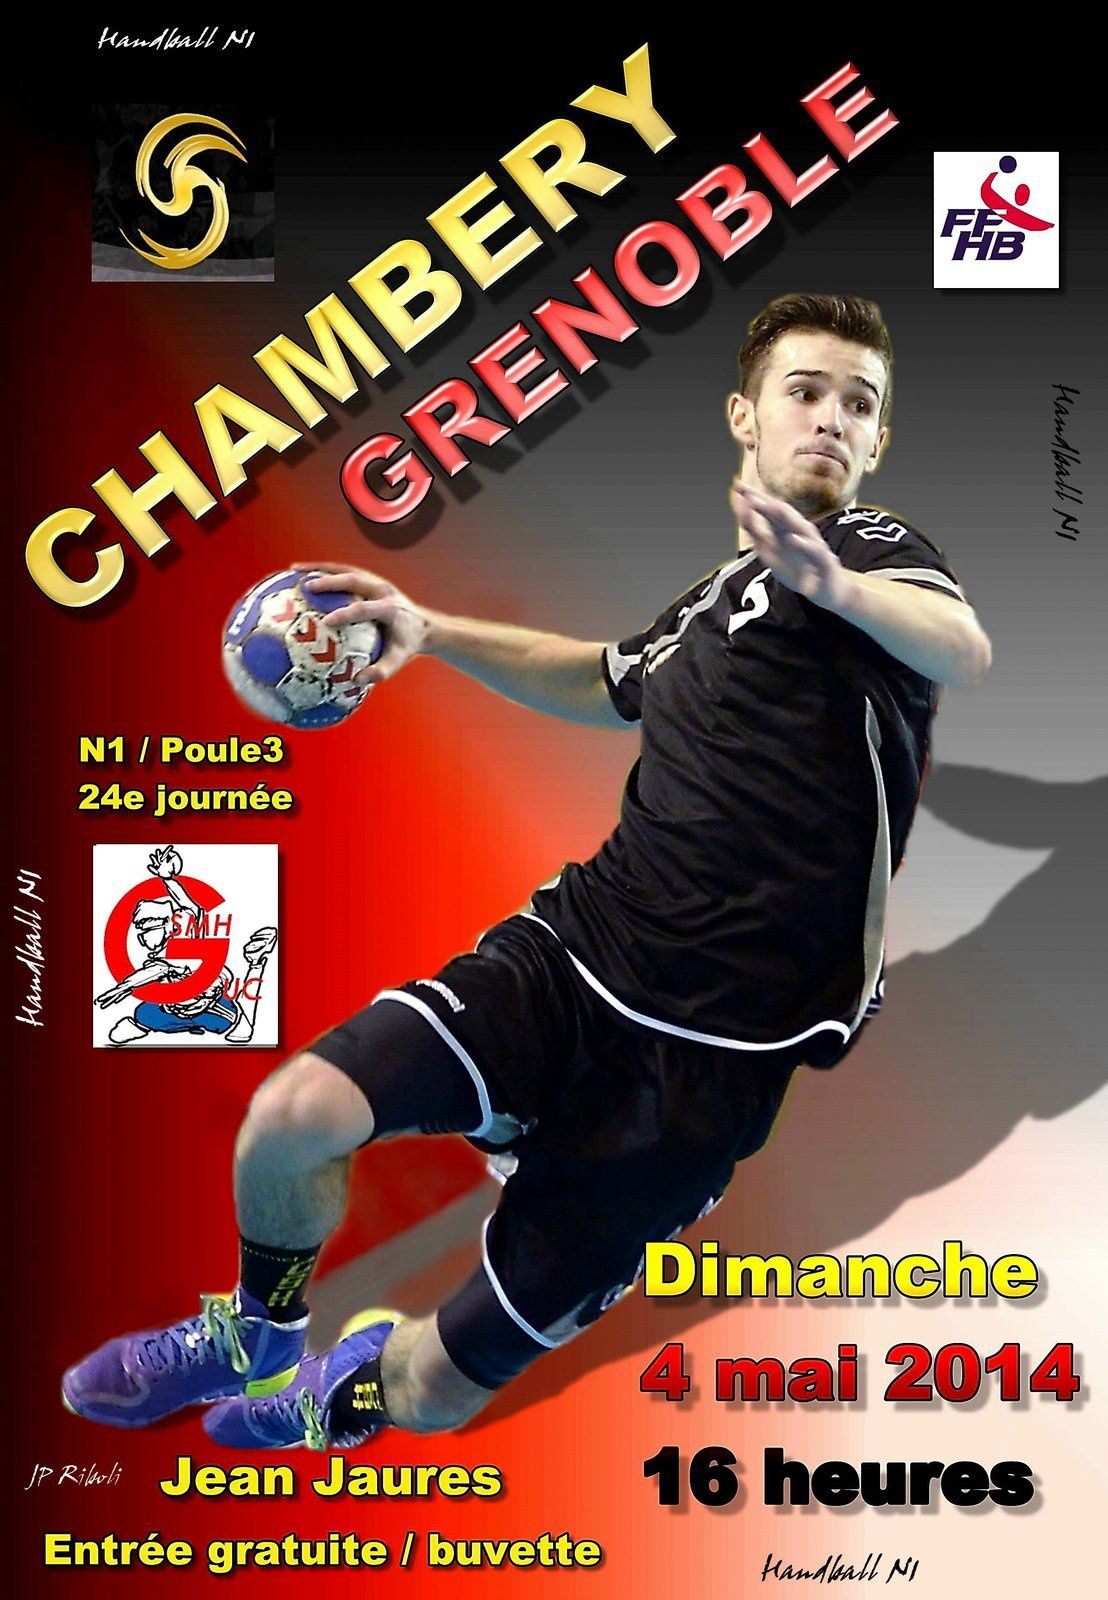 N1 CHAMBERY2 recoit GRENOBLE dimanche 4 mai à 16 heures